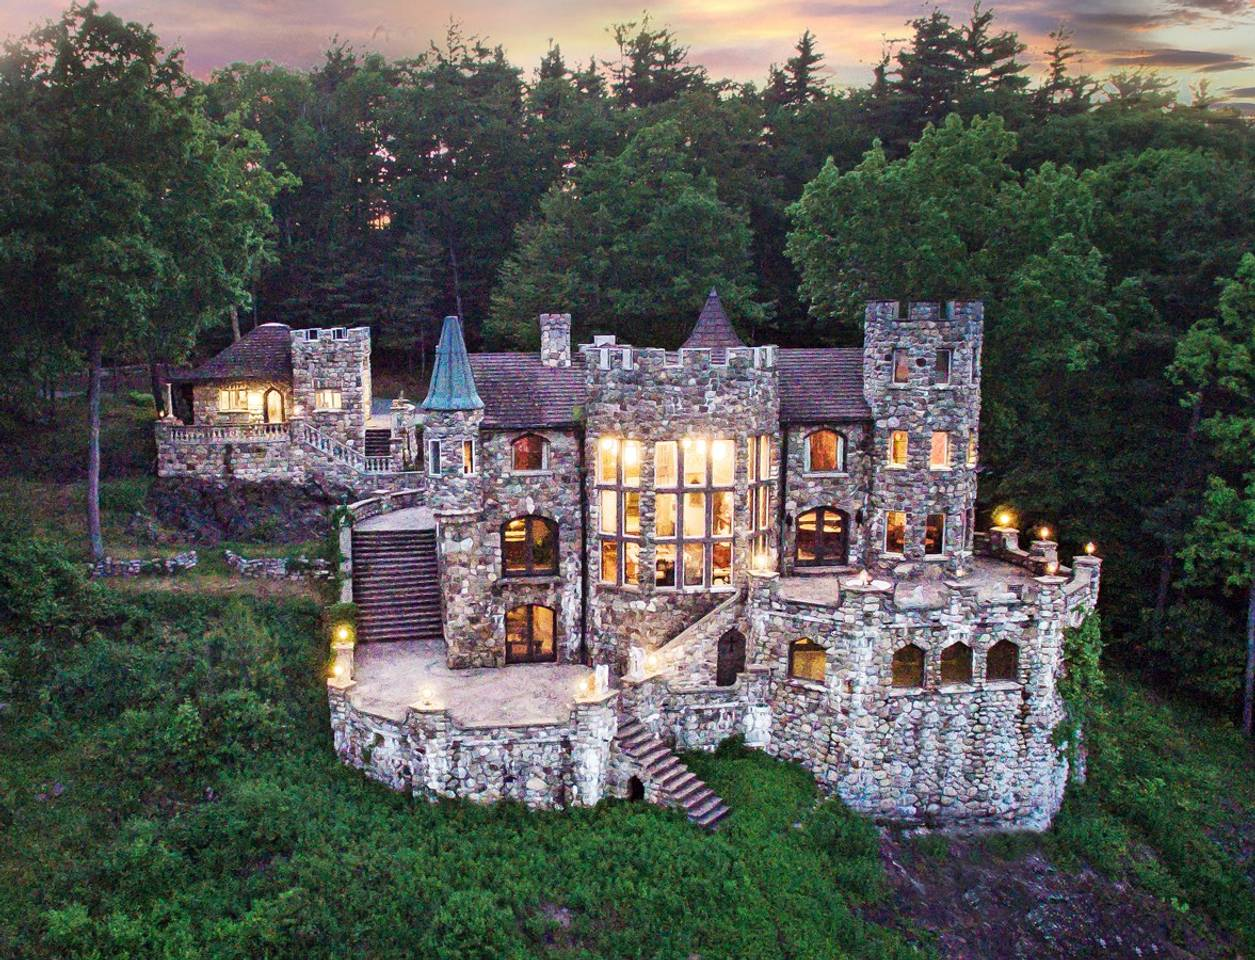 Vacation Alert: You Can Rent Castles for Less Than $50 a Night